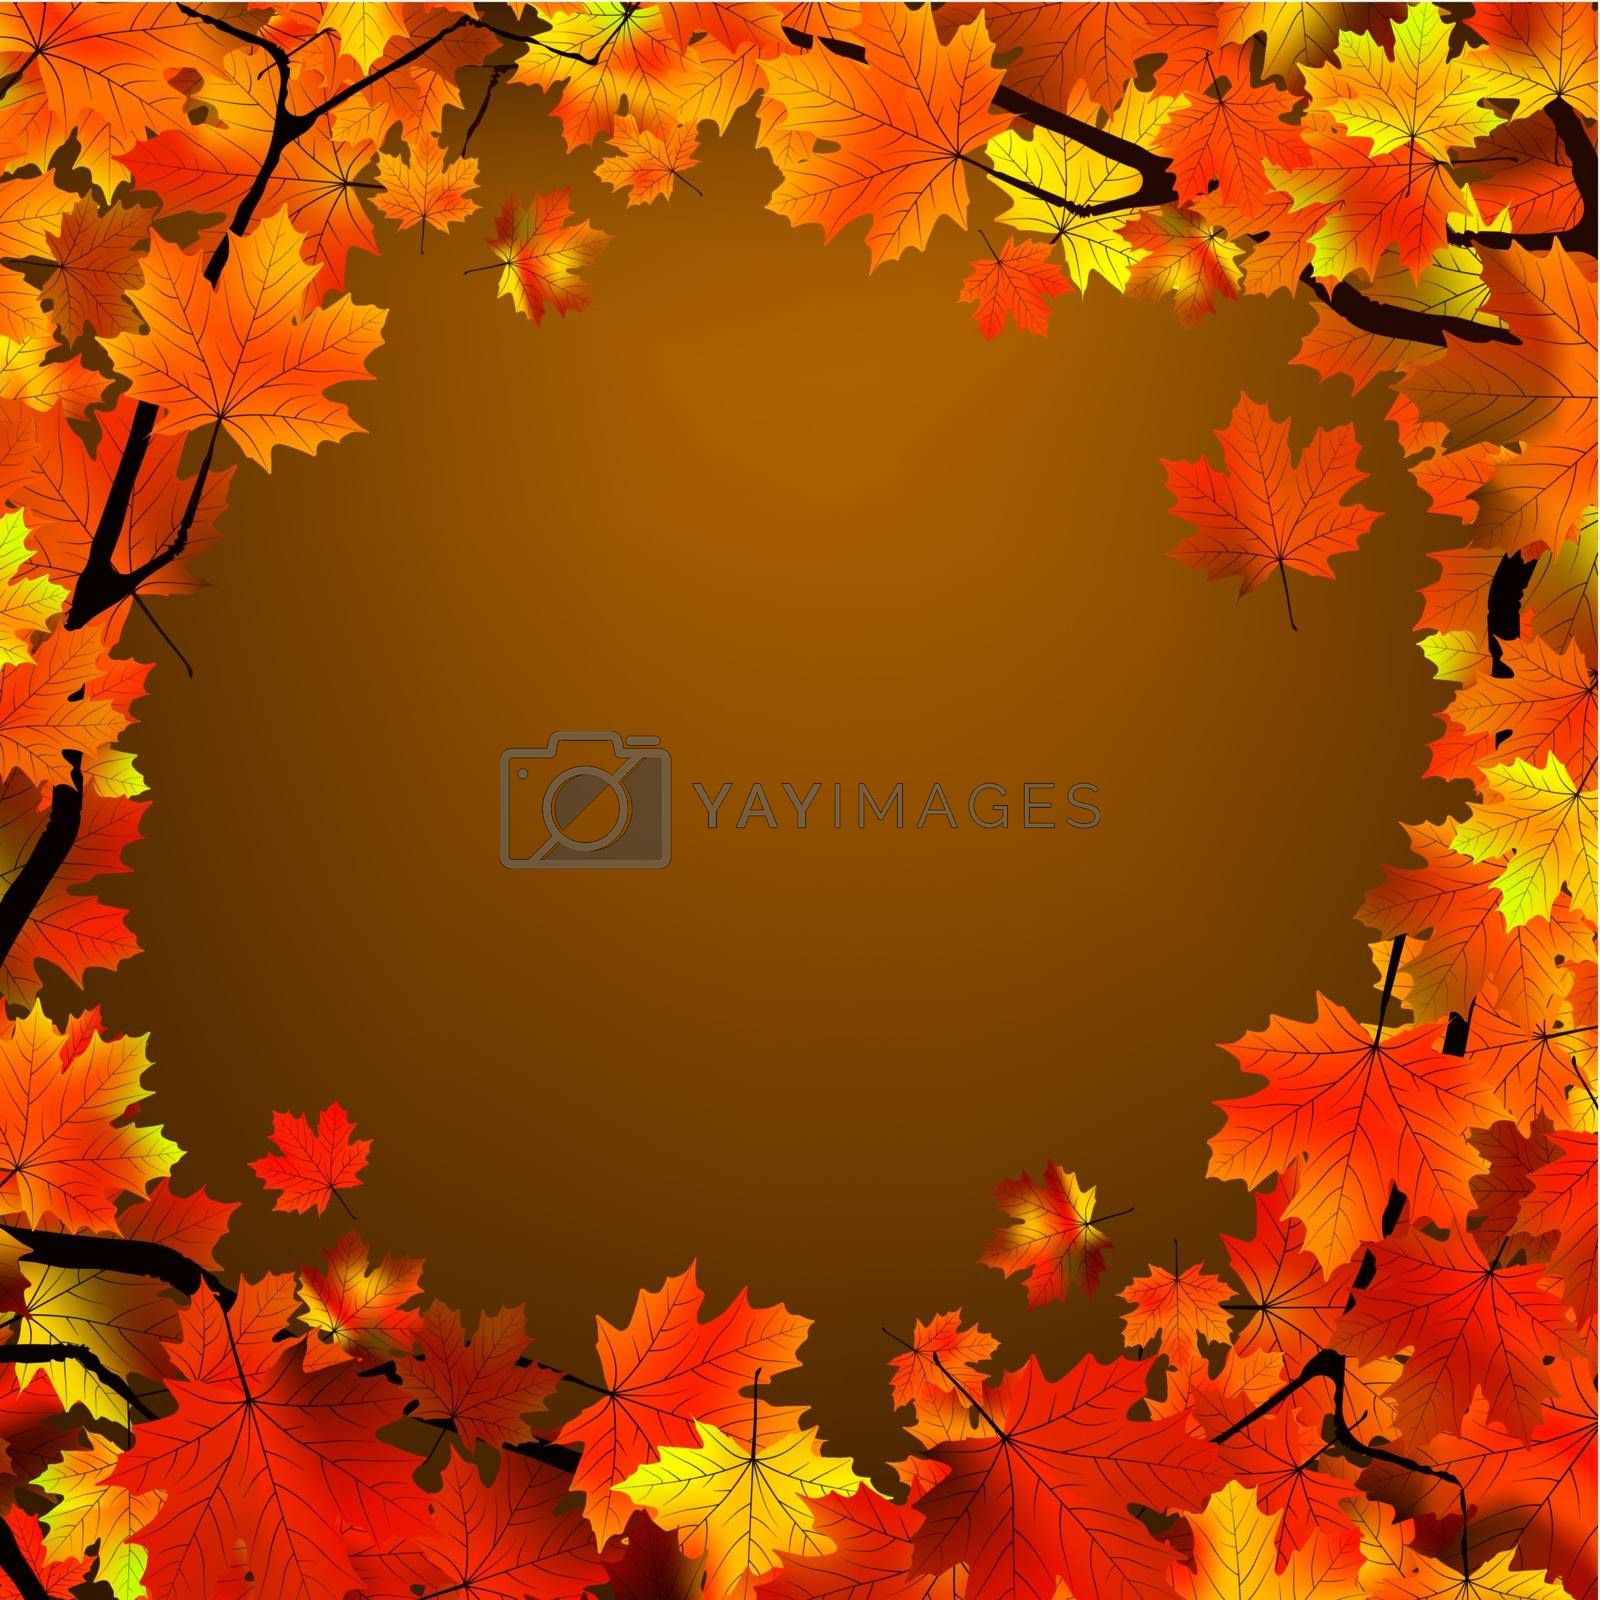 Thanksgiving day celebration. EPS 8 vector file included